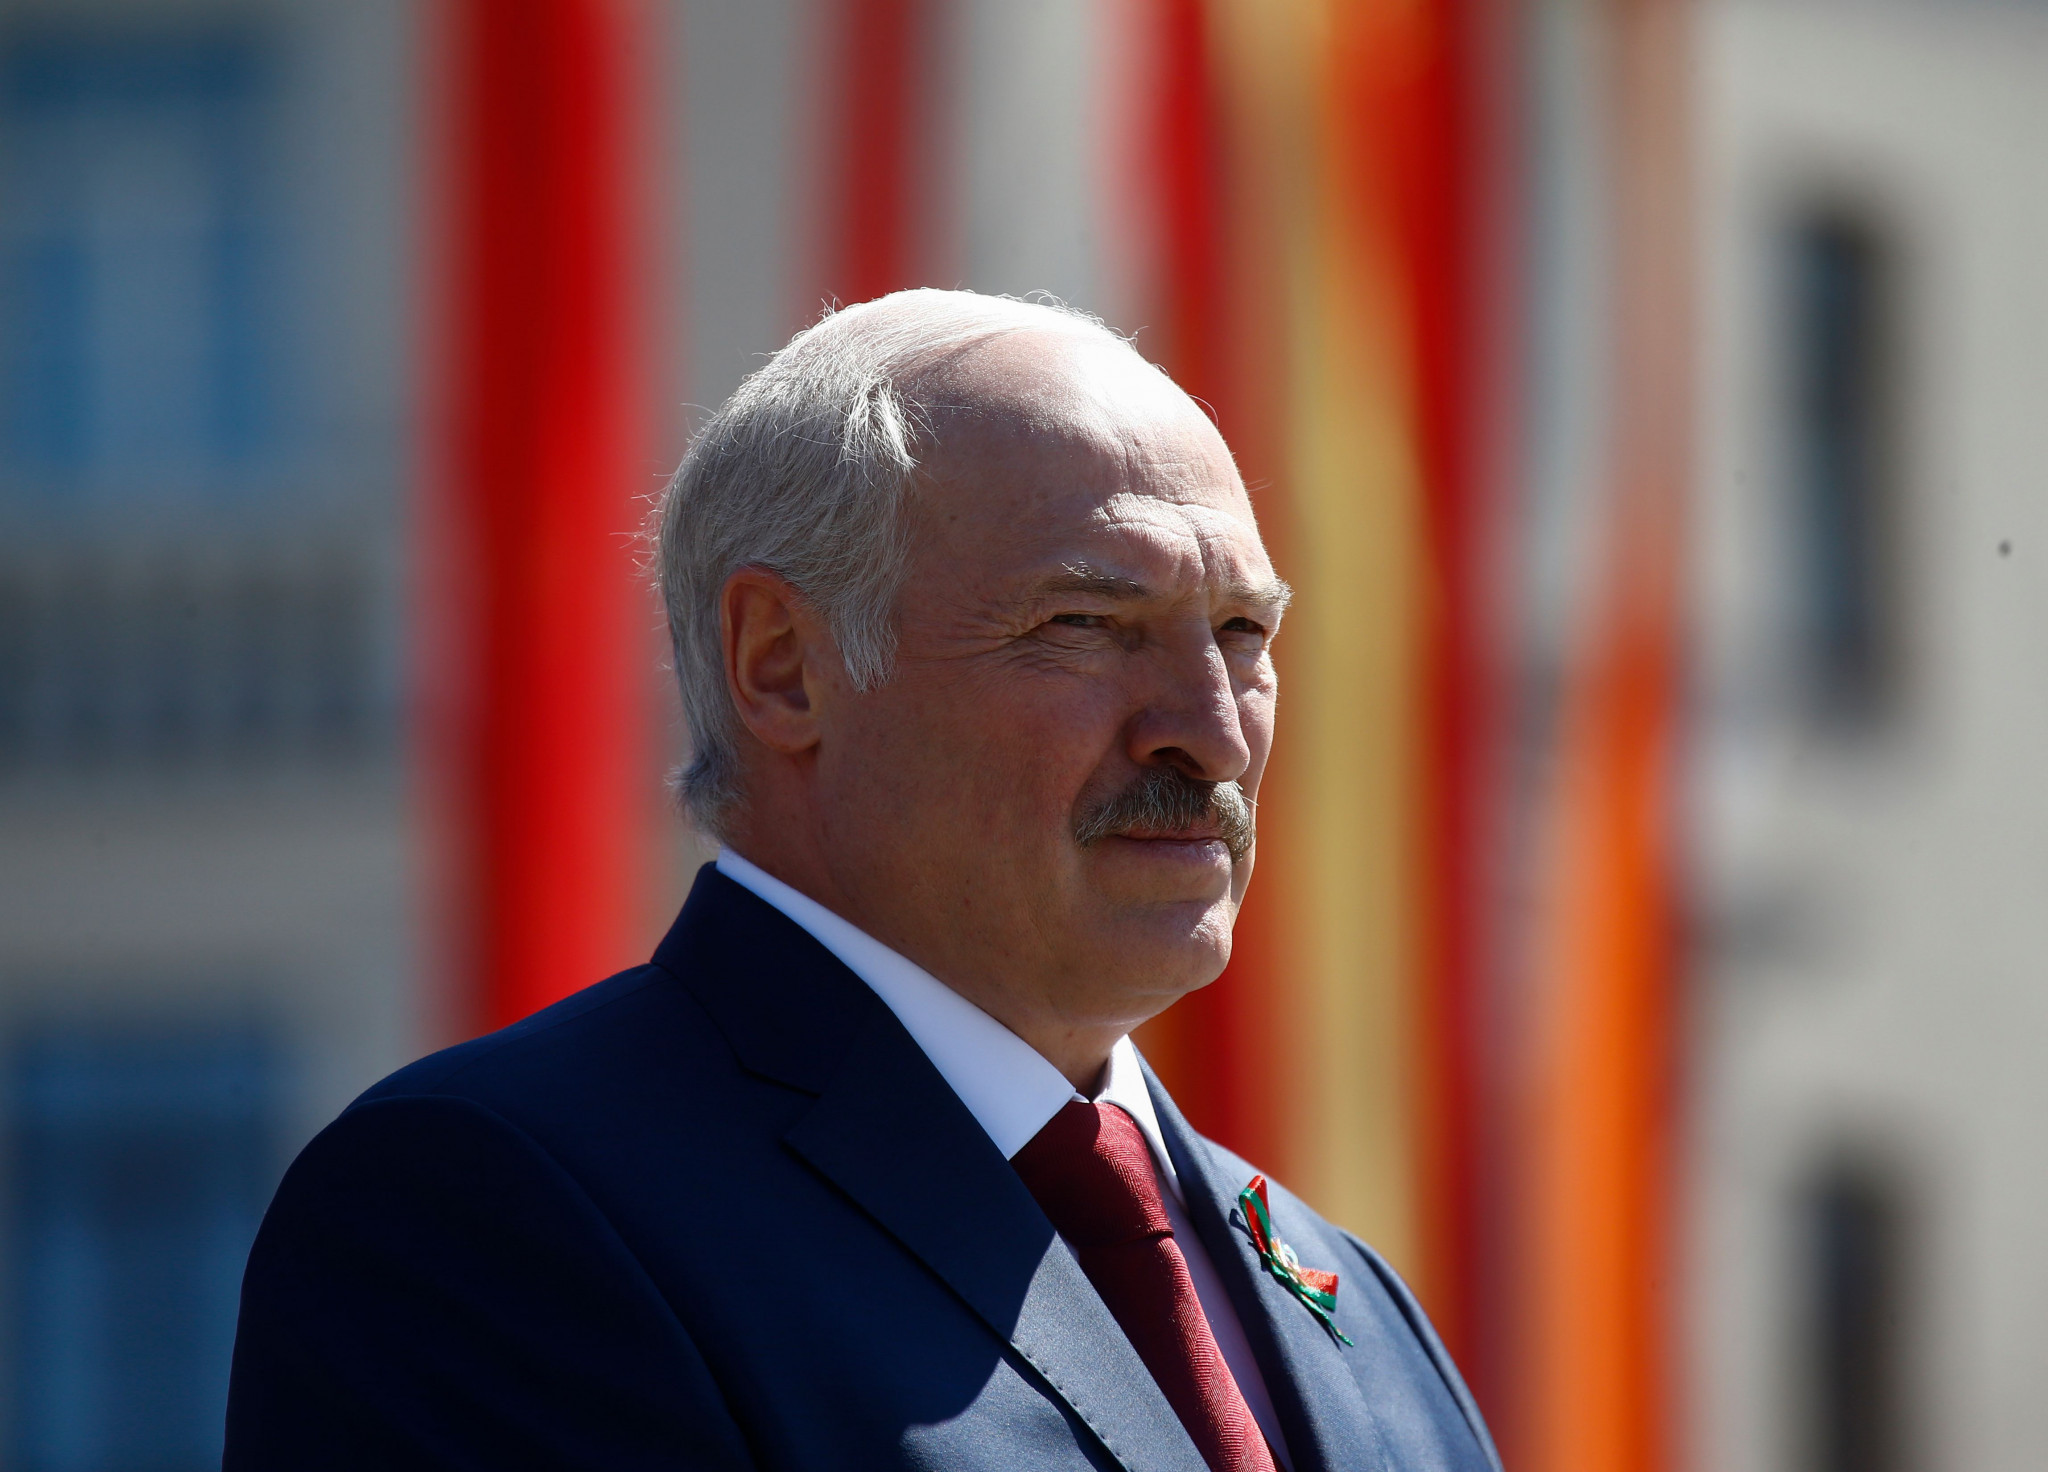 Belarus President Alexander Lukashenko has claimed the European Games will boost tourism in the country ©Getty Images